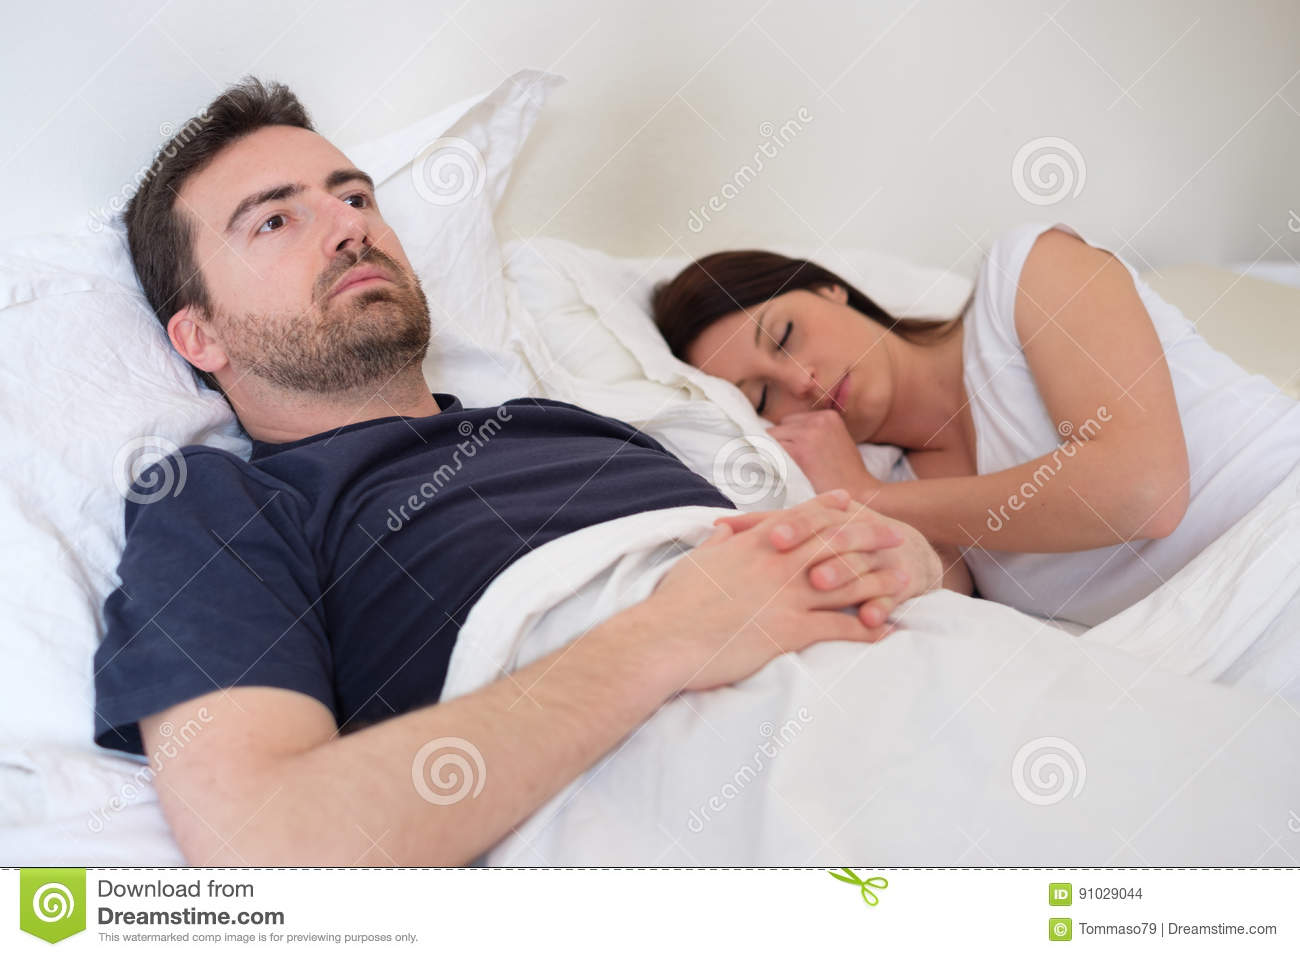 Sad and depressed man in the bed with his wife